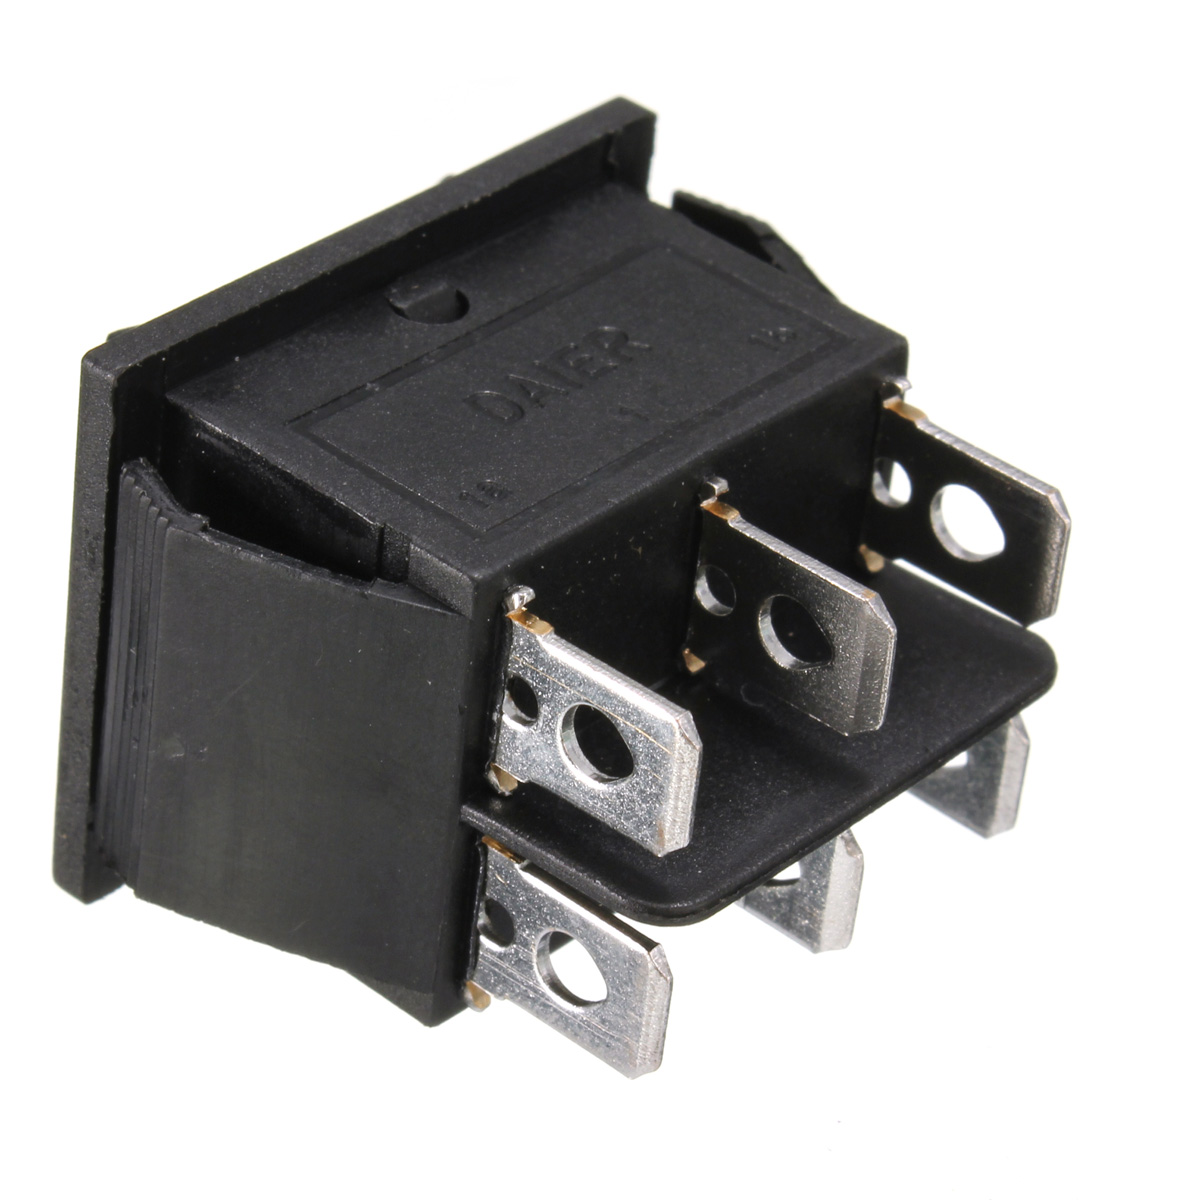 12 Volt 6 Pin Dpdt Power Window Momentary Rocker Switch Ac 250v 10a 125v 15a on 12 volt relay diagram